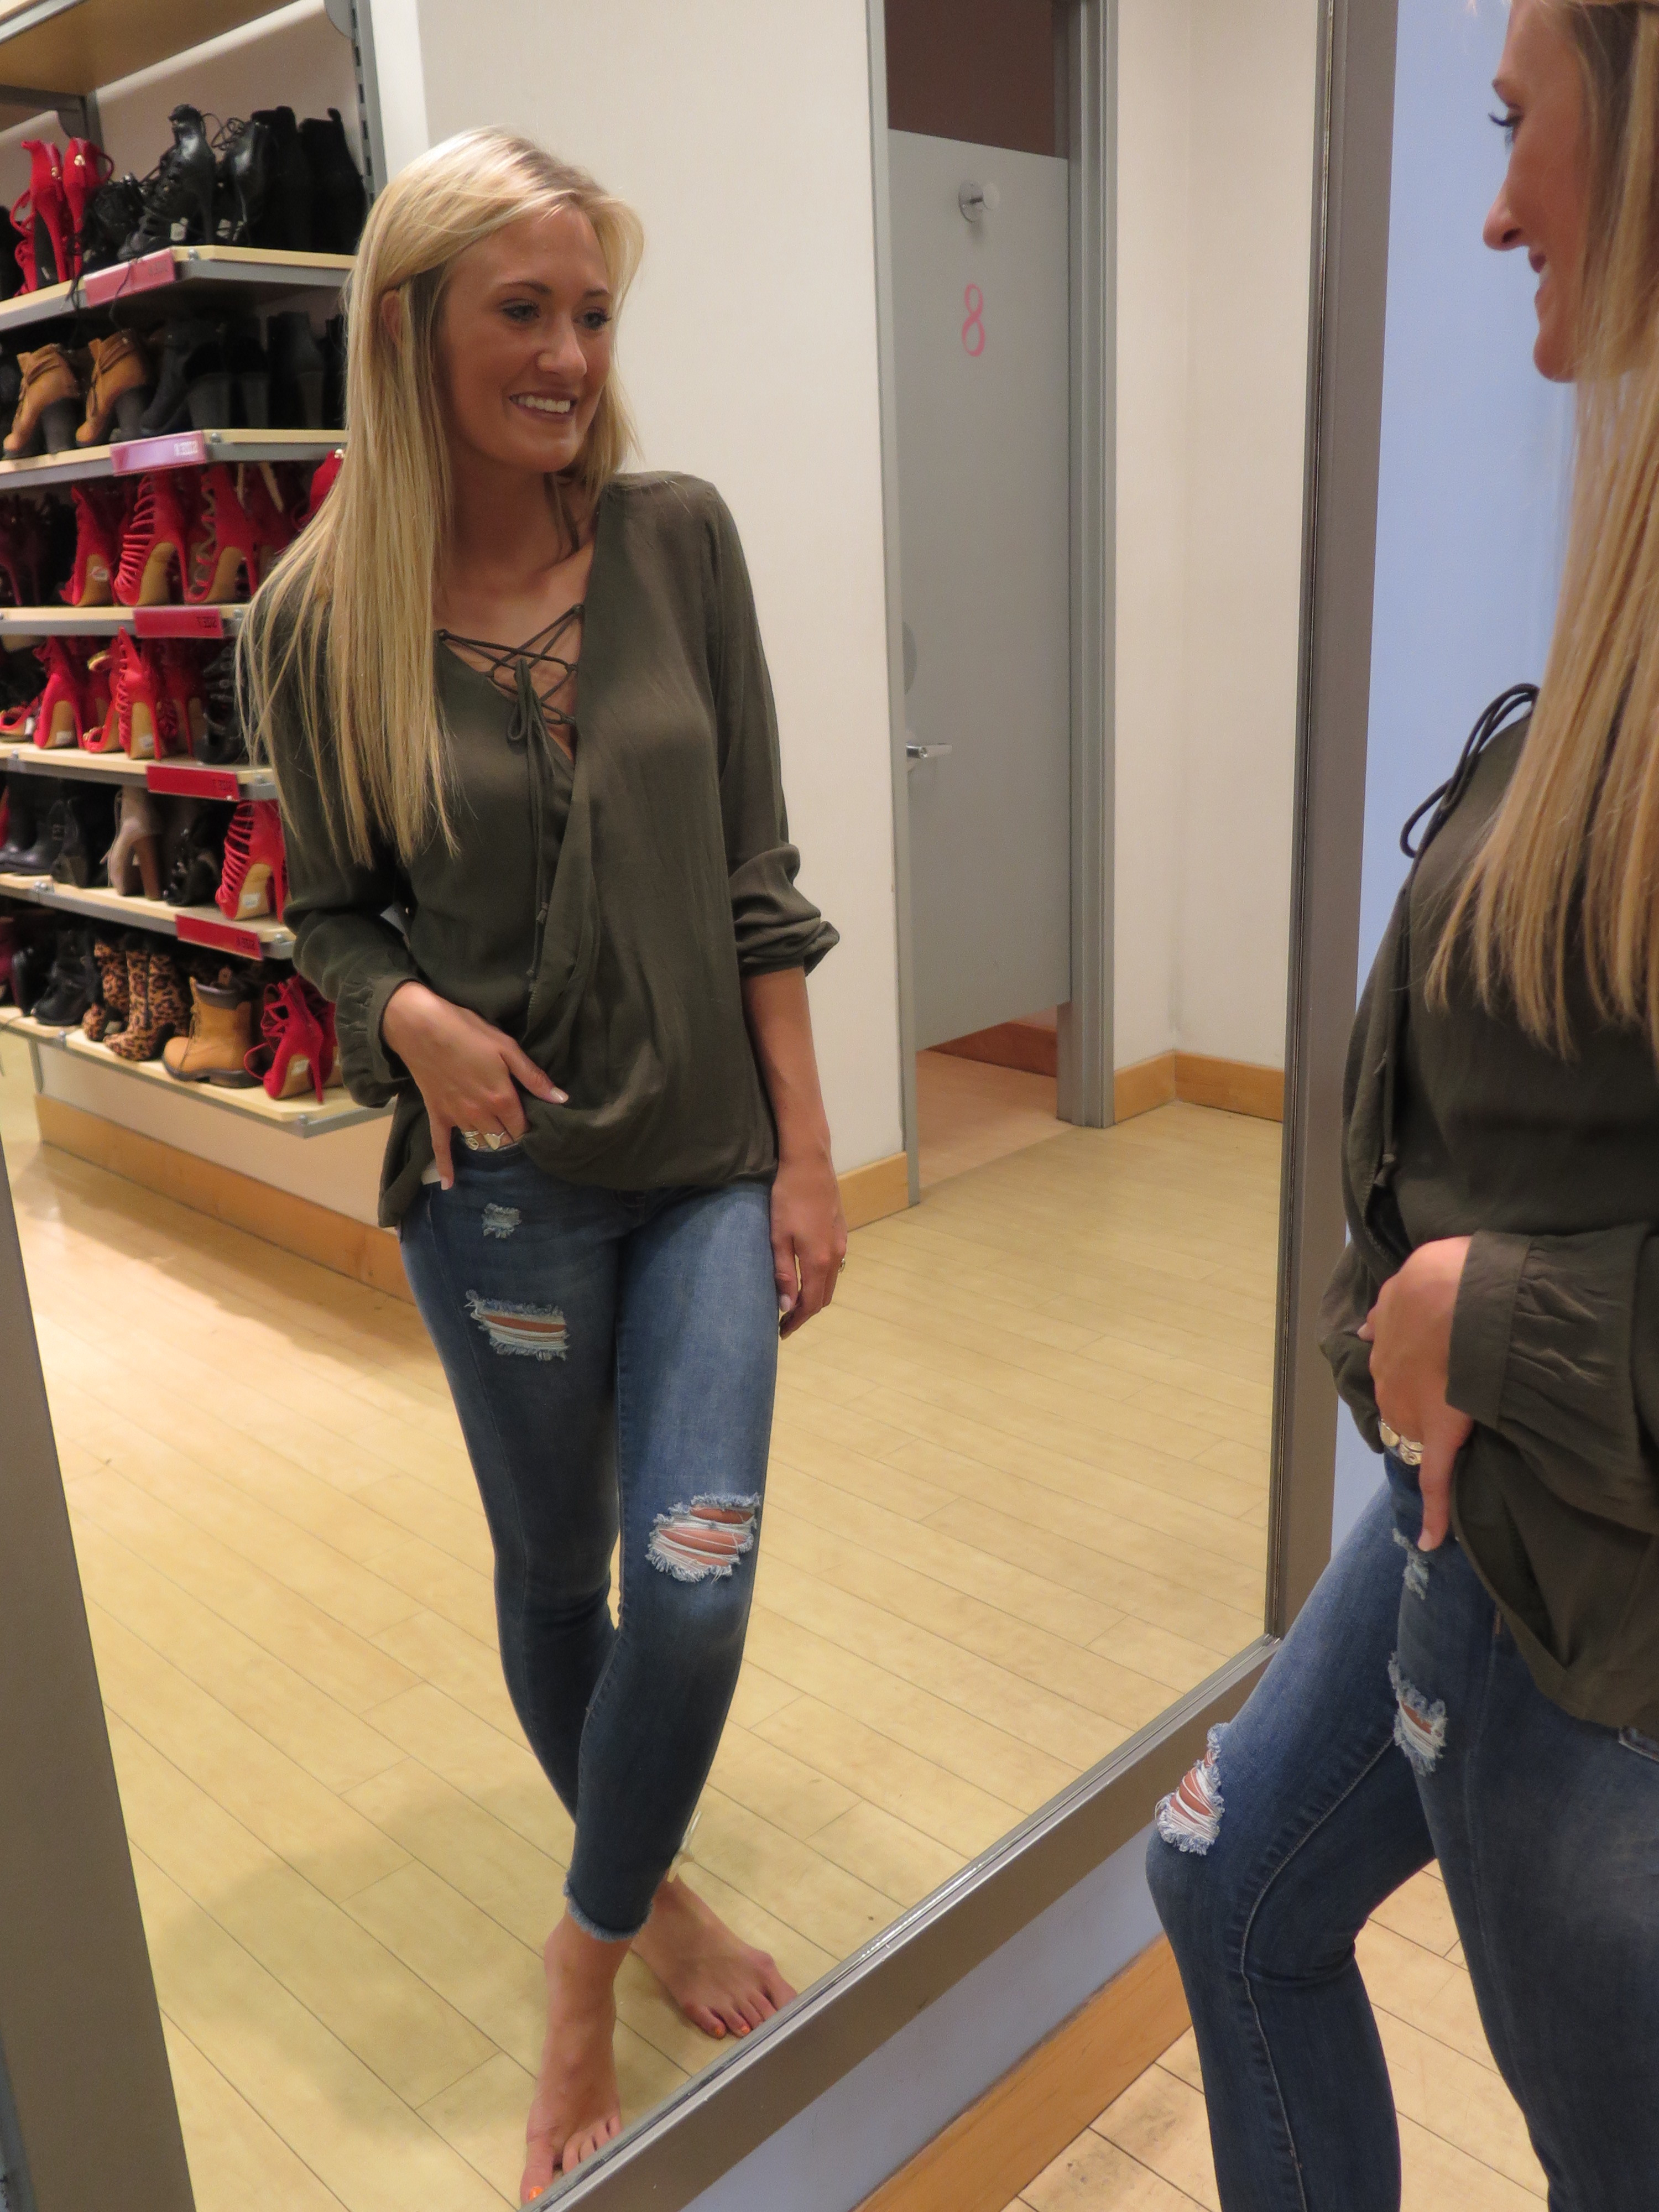 Tanger Outlet Charlotte Russe Outlet lace up army green top, distressed jeans